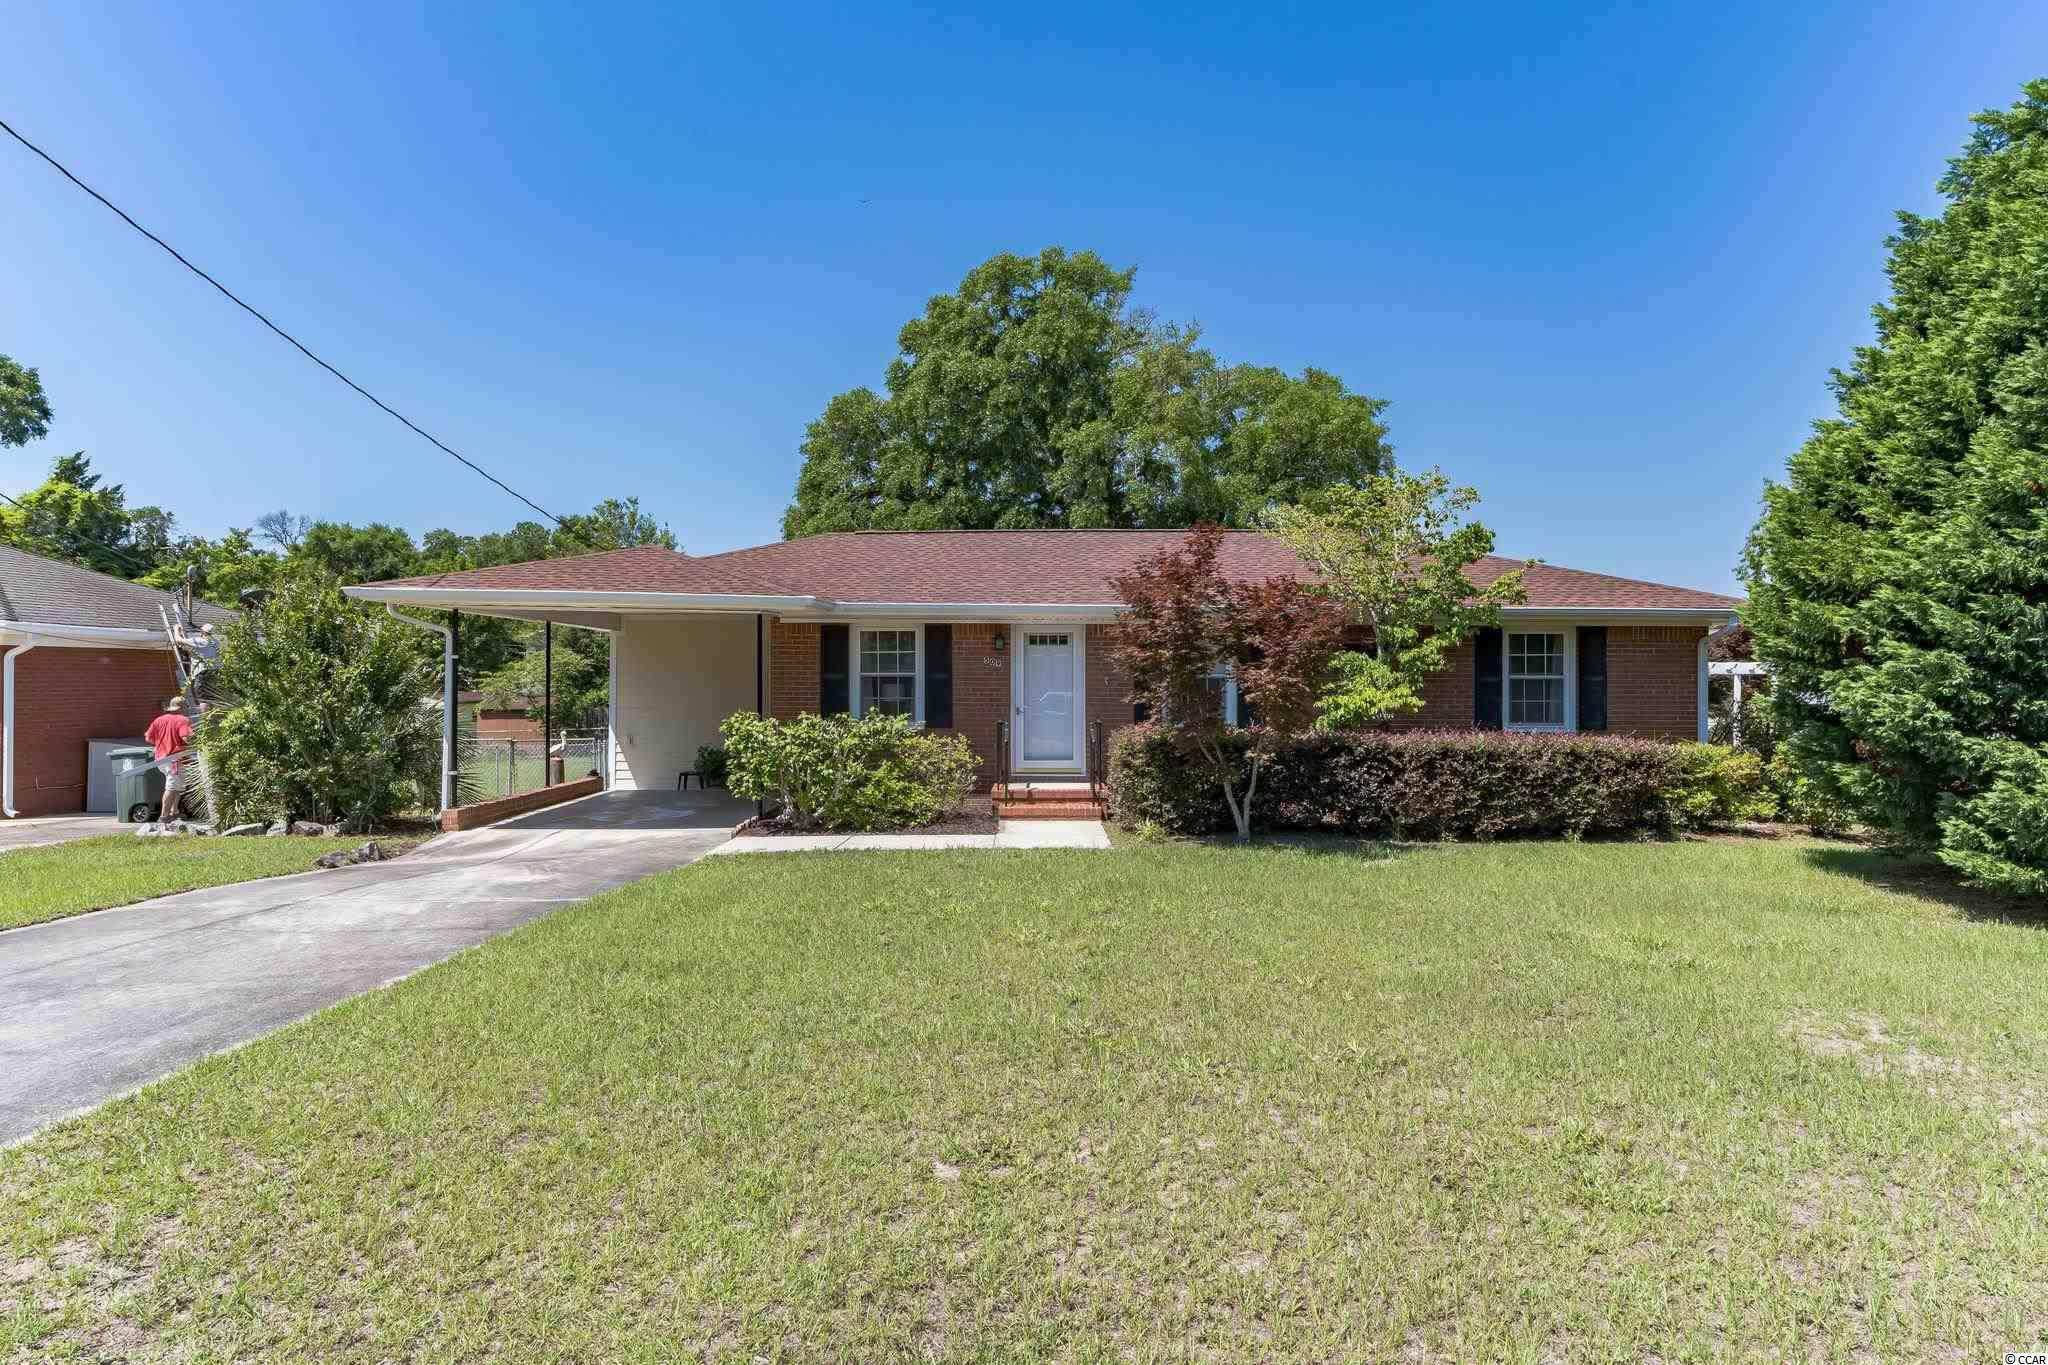 Immaculate Brick Ranch Home - Awesome location! only 2 blocks to McLean Park, 5 blocks to the beautiful Atlantic Ocean - just tucked away in a well established community -Plus No HOA's! This 3BR-2BA Brick home has been meticulously updated - New Roof - New Deck -Freshly Painted throughout - New kitchen & laundry room floors - newer windows throughout the home & a brand new slider door leading out to the new deck -  All new ceiling fans & outdoor light fixtures - refurbished original hard wood floors in Livingroom - working gas fire place plus new white bead board ceiling installed in the  family room - as well as an updated Master bathroom & Laundry room, with a new washer & dryer conveying. The owners have done all the heavy lifting for you! This charming Home is located on an oversized lot with plenty of beautiful trees & mature landscaping - the lot is large enough for an in-ground pool with plenty of room left over. Just a short walk or golf cart ride to the Beach and the Main St. restaurants & attractions - Set your showing appointment today!!! This is a Great Home & will not last long!